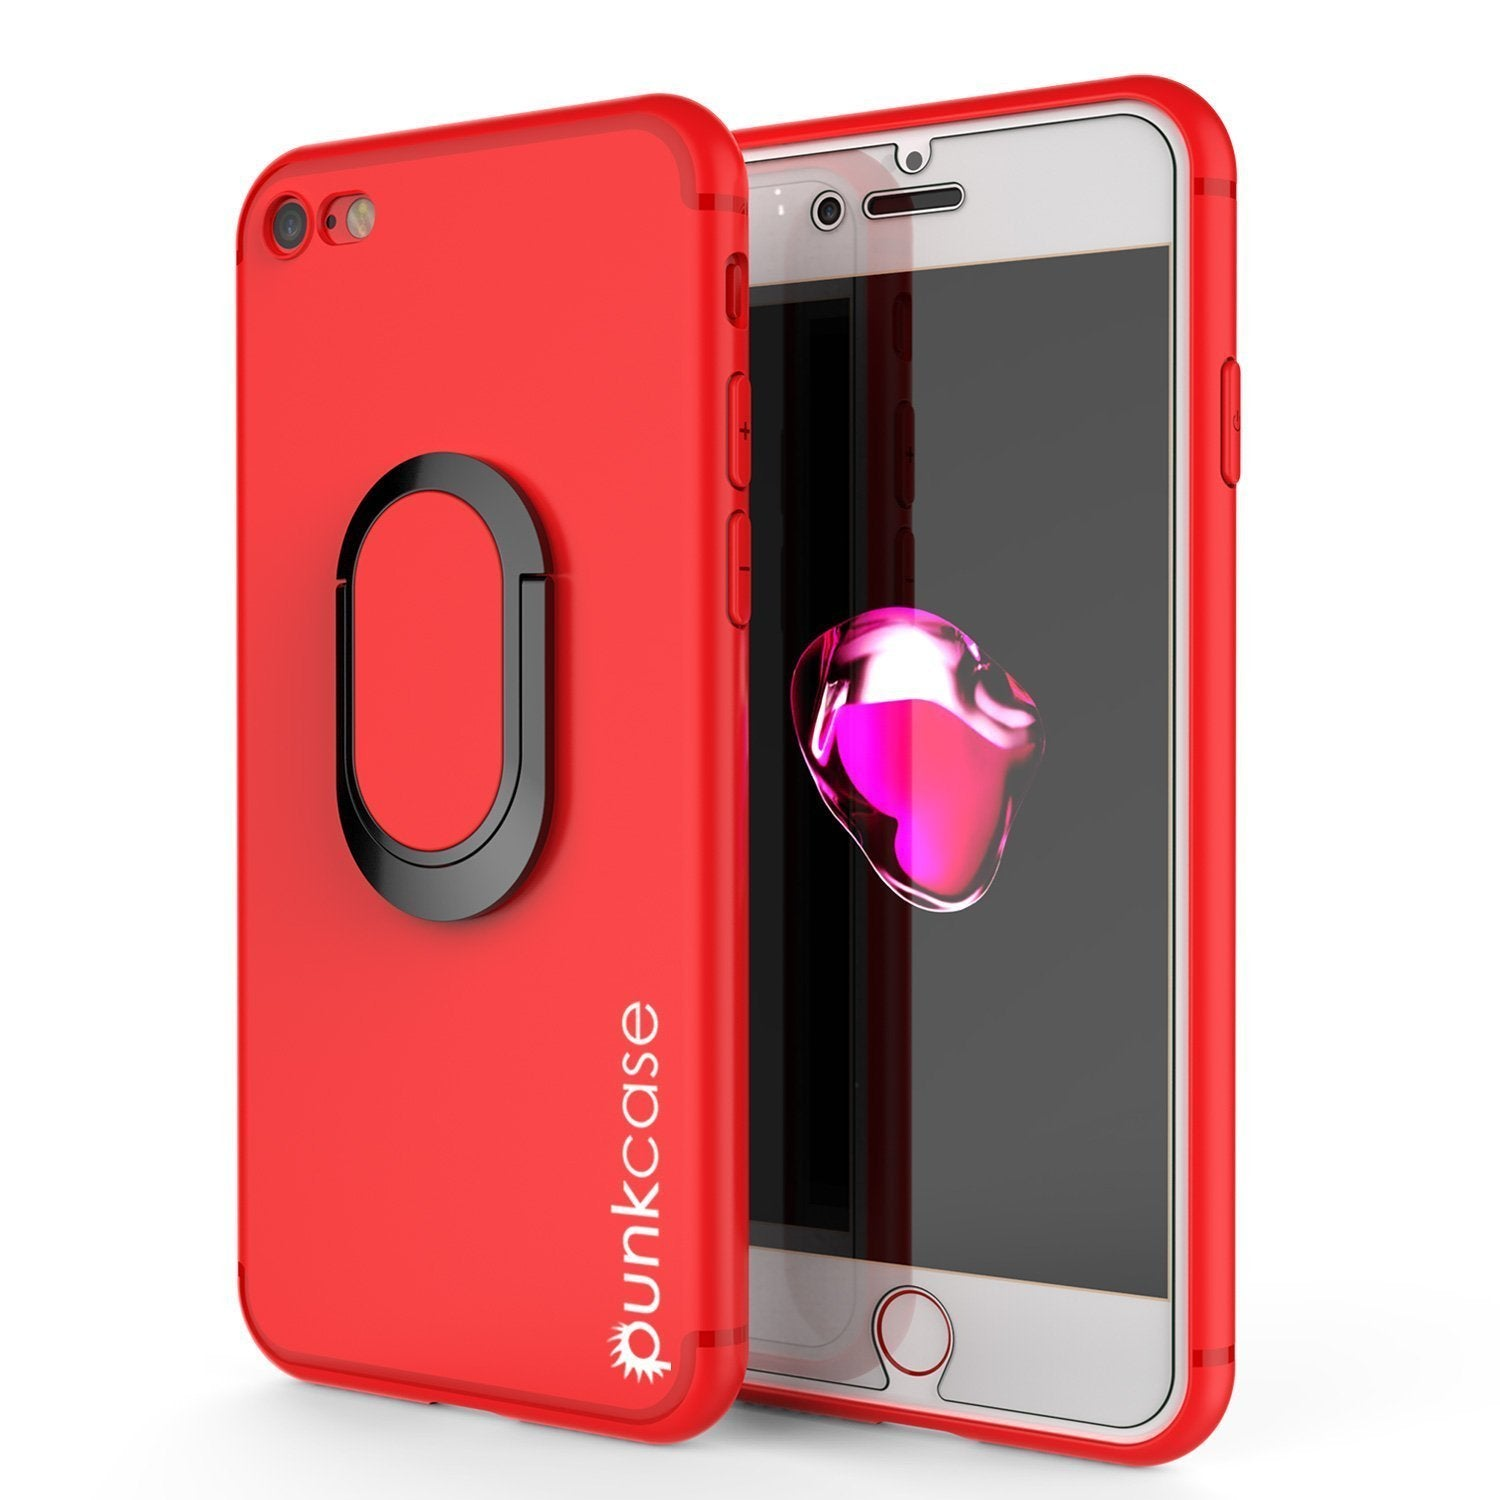 "iPhone SE (4.7"") Case, Punkcase Magnetix Protective TPU Cover W/ Kickstand, Tempered Glass Screen Protector [Red]"